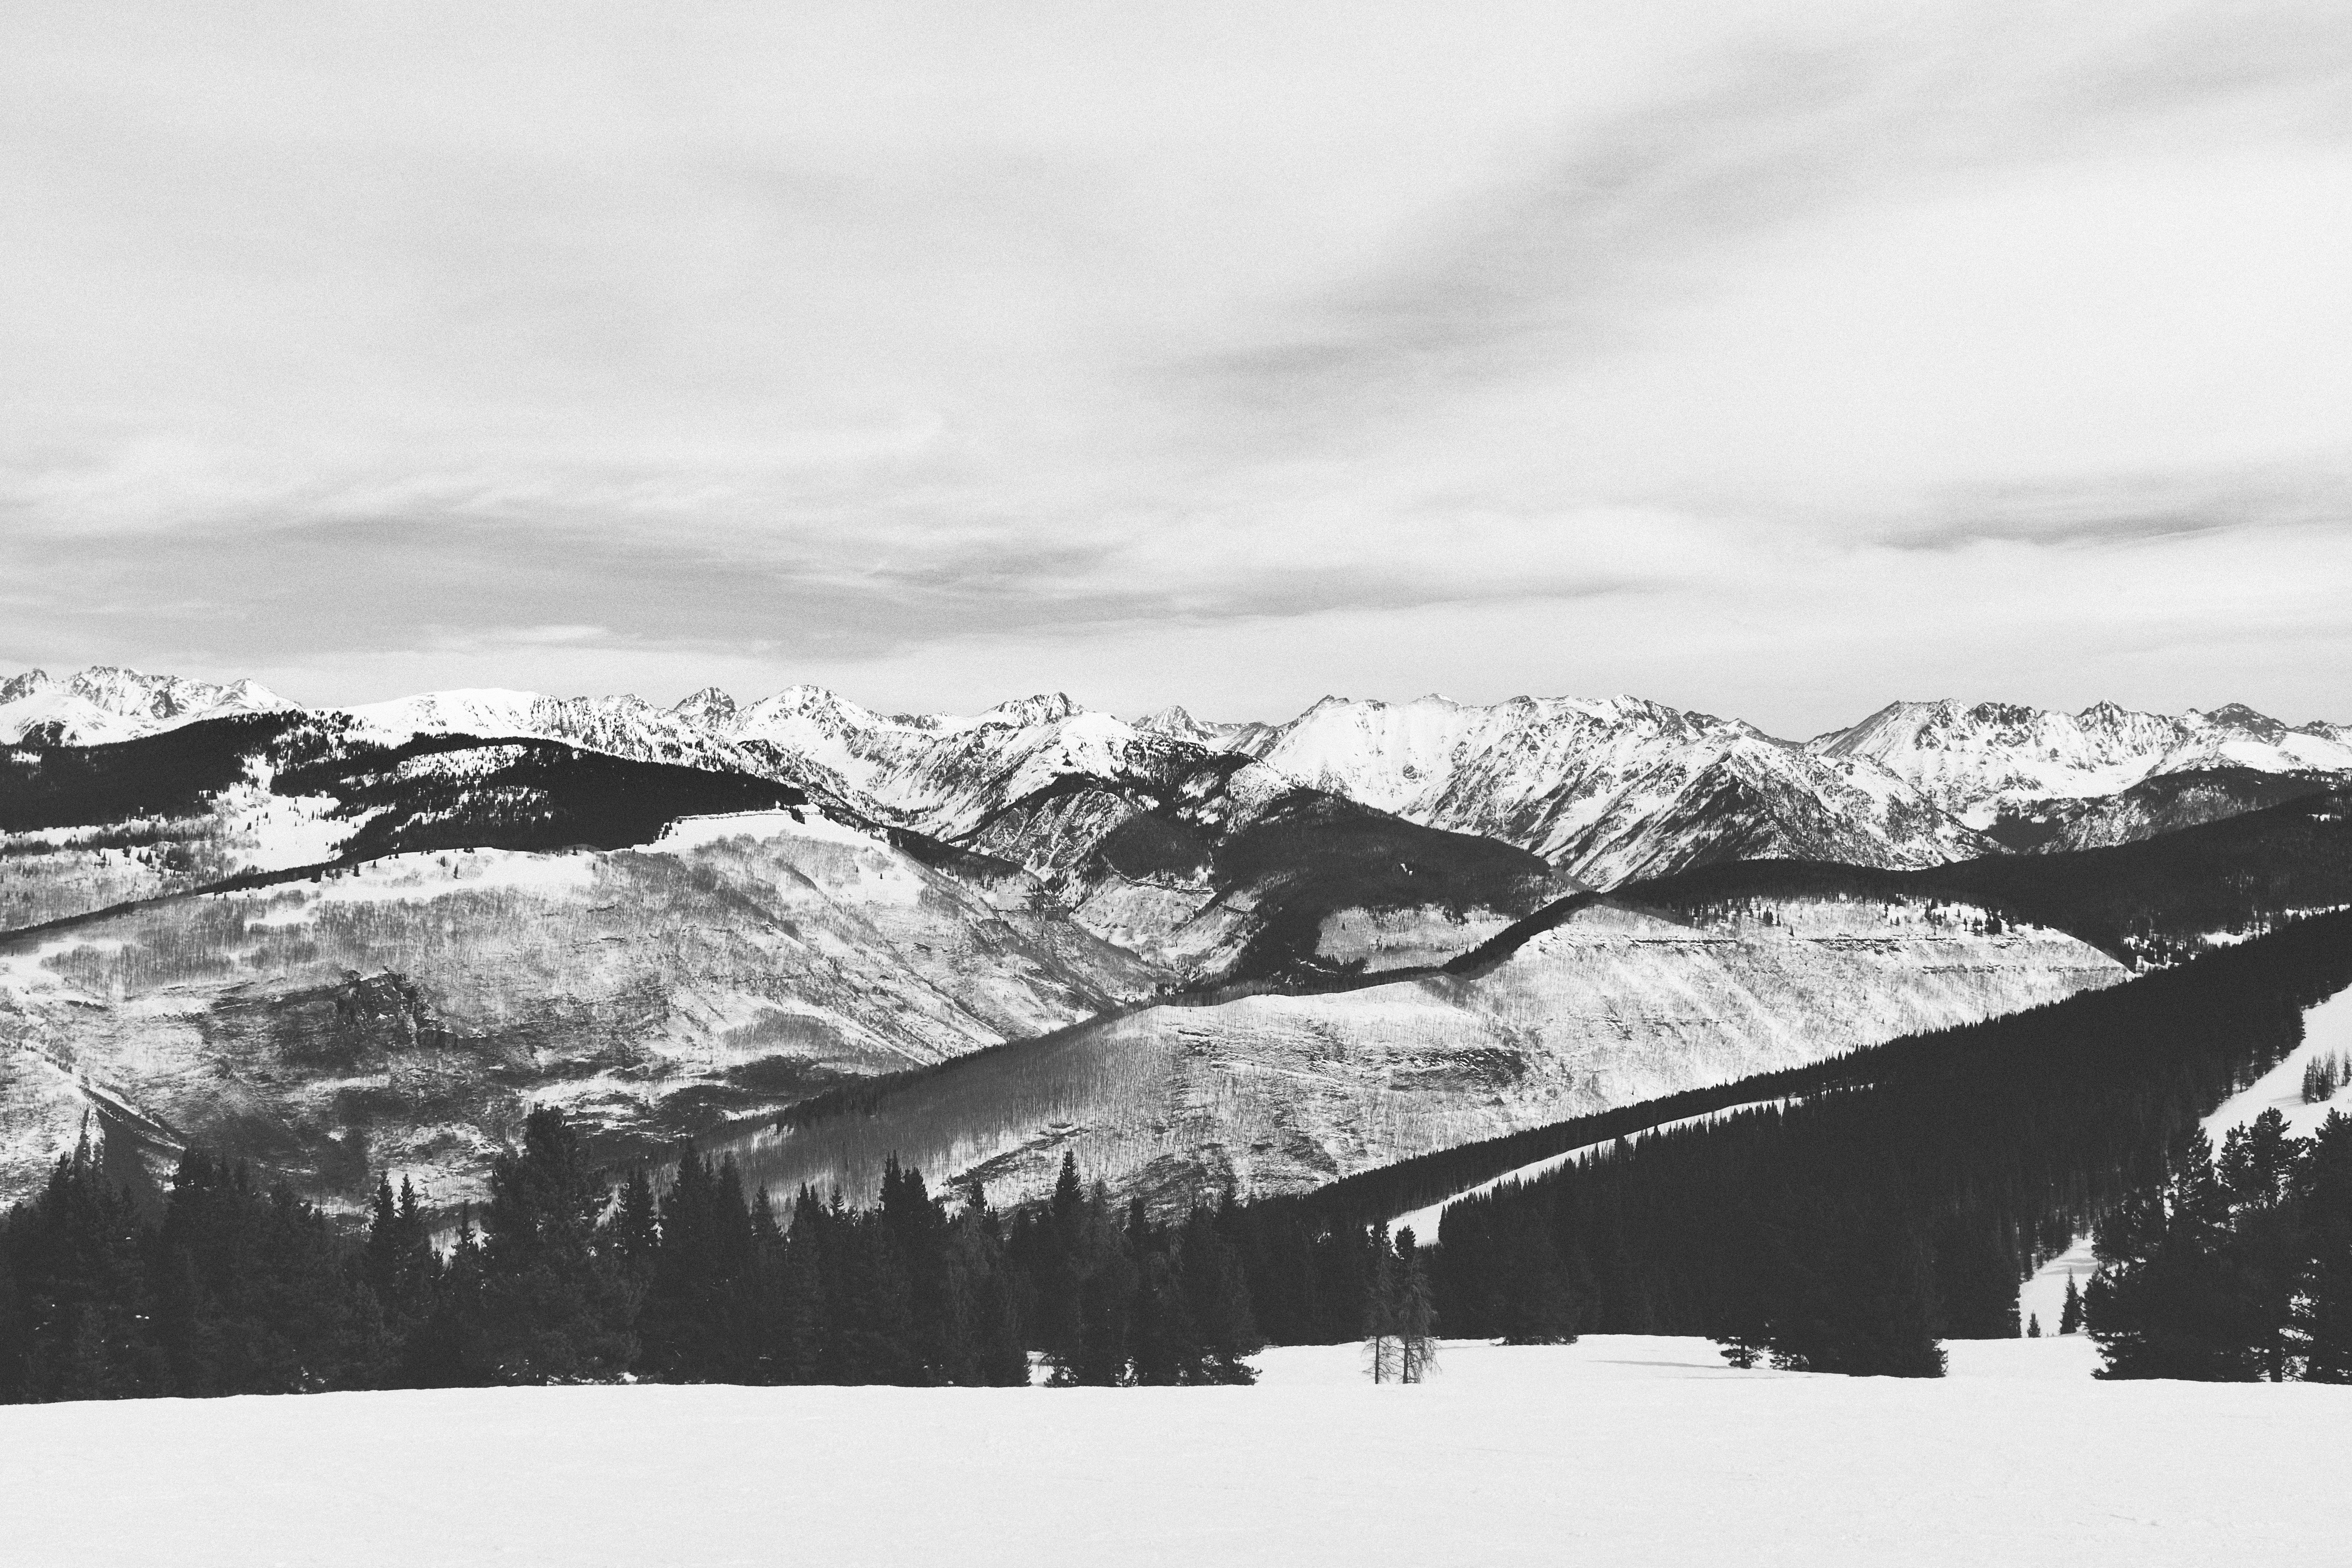 Free Images : snow, winter, black and white, mountain range, weather ...